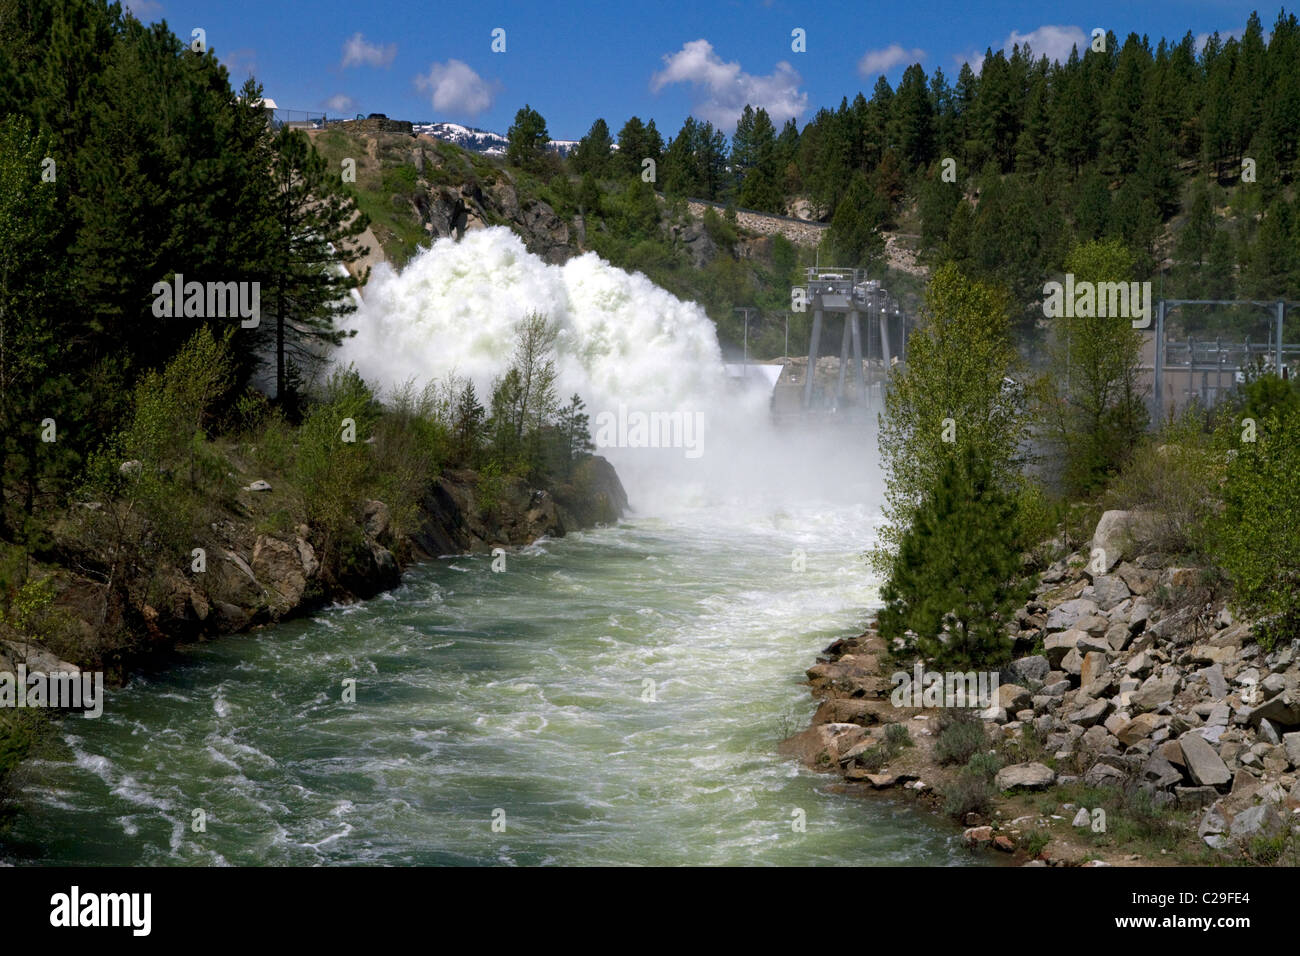 High water during spring runoff at Cascade Dam and the North Fork of the Payette River, Idaho, USA. - Stock Image